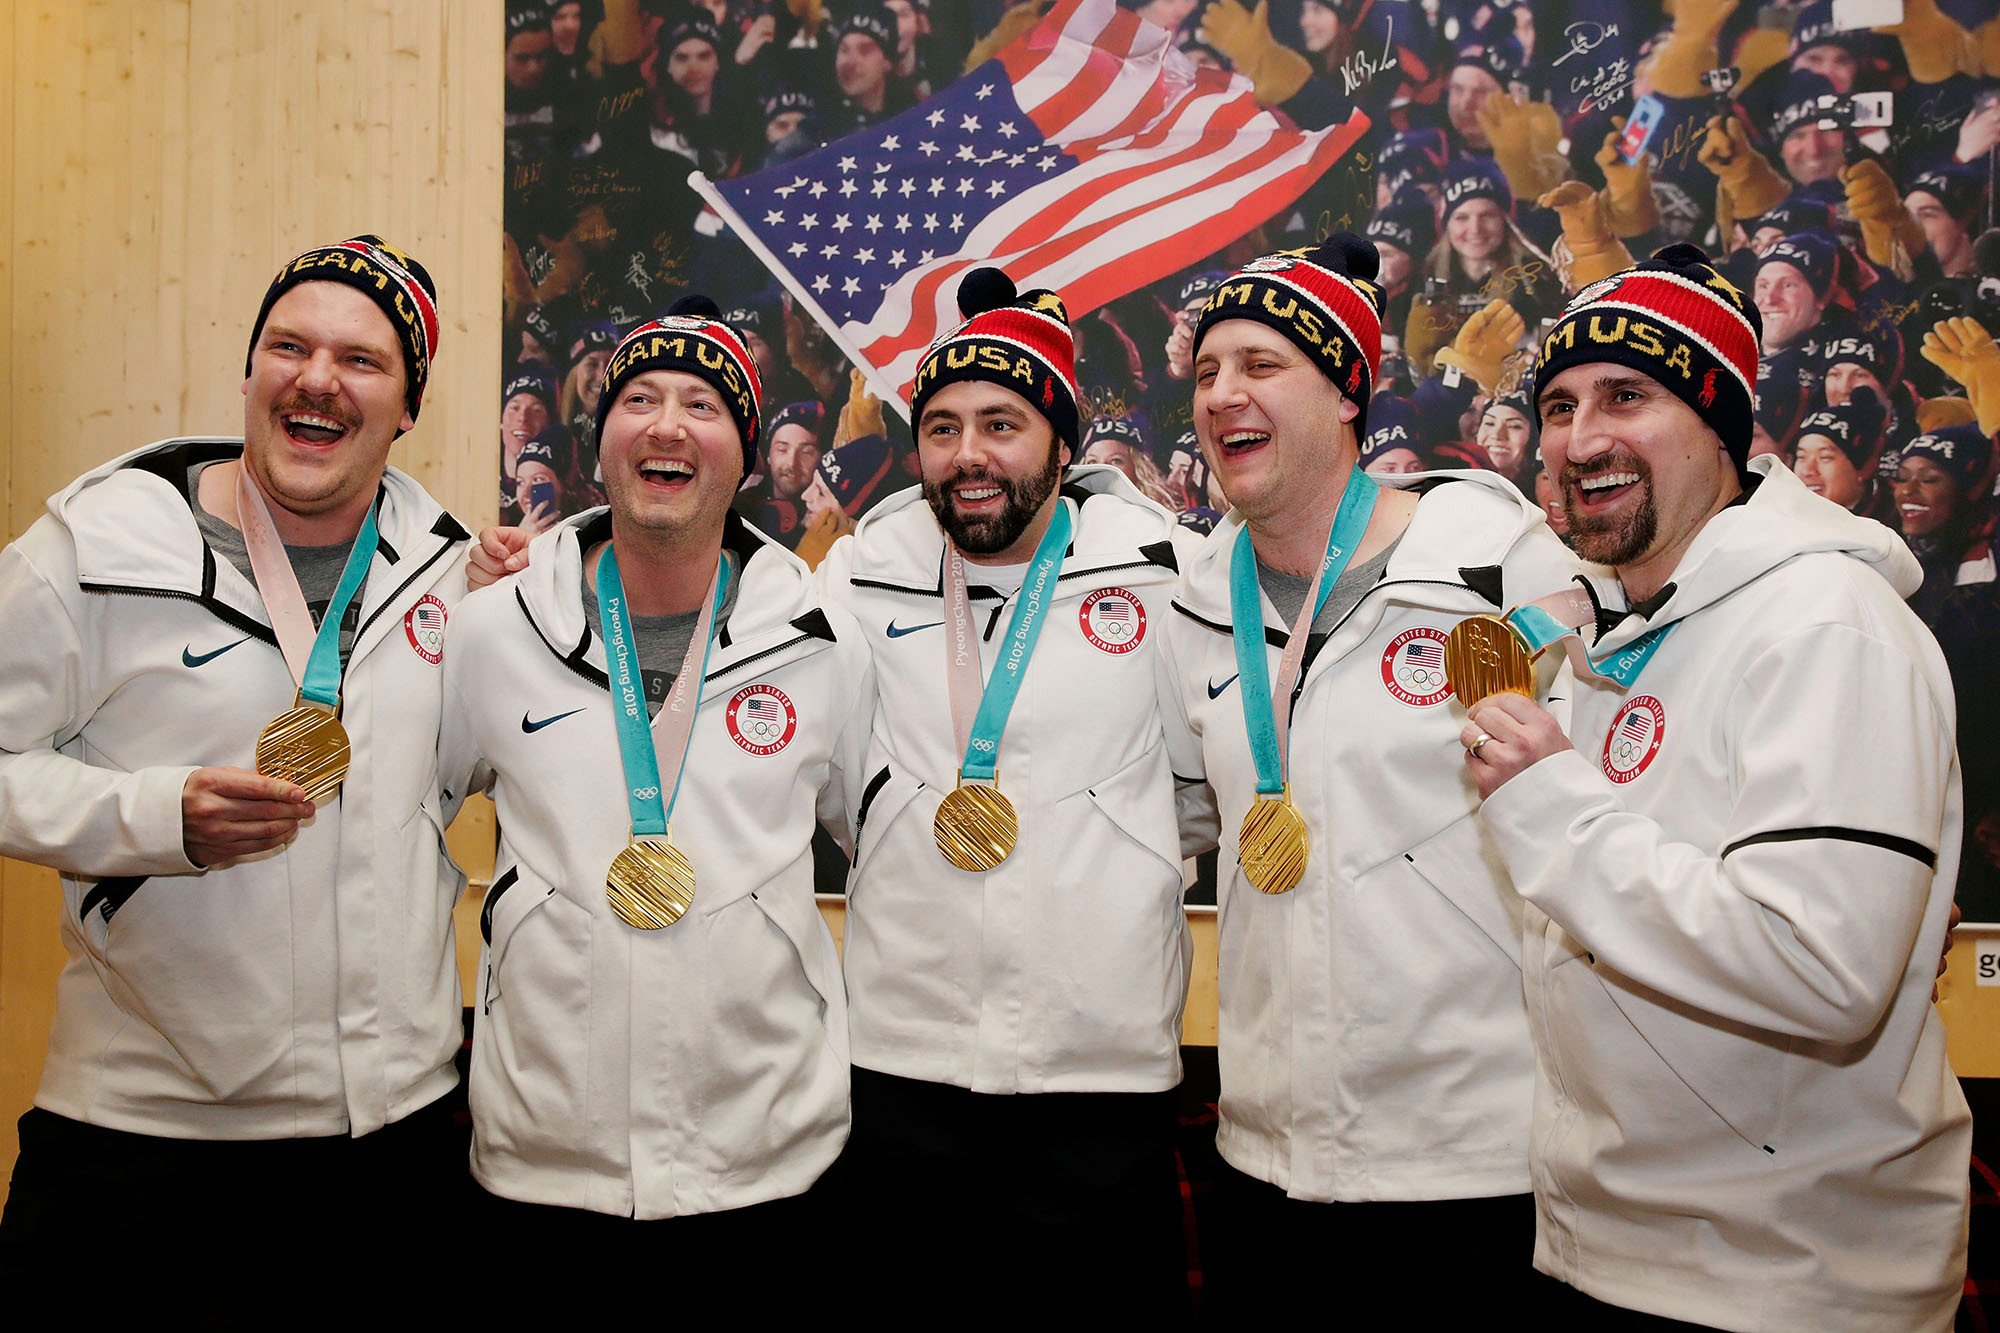 Delta wouldn't upgrade the gold-winning US curling team's seats